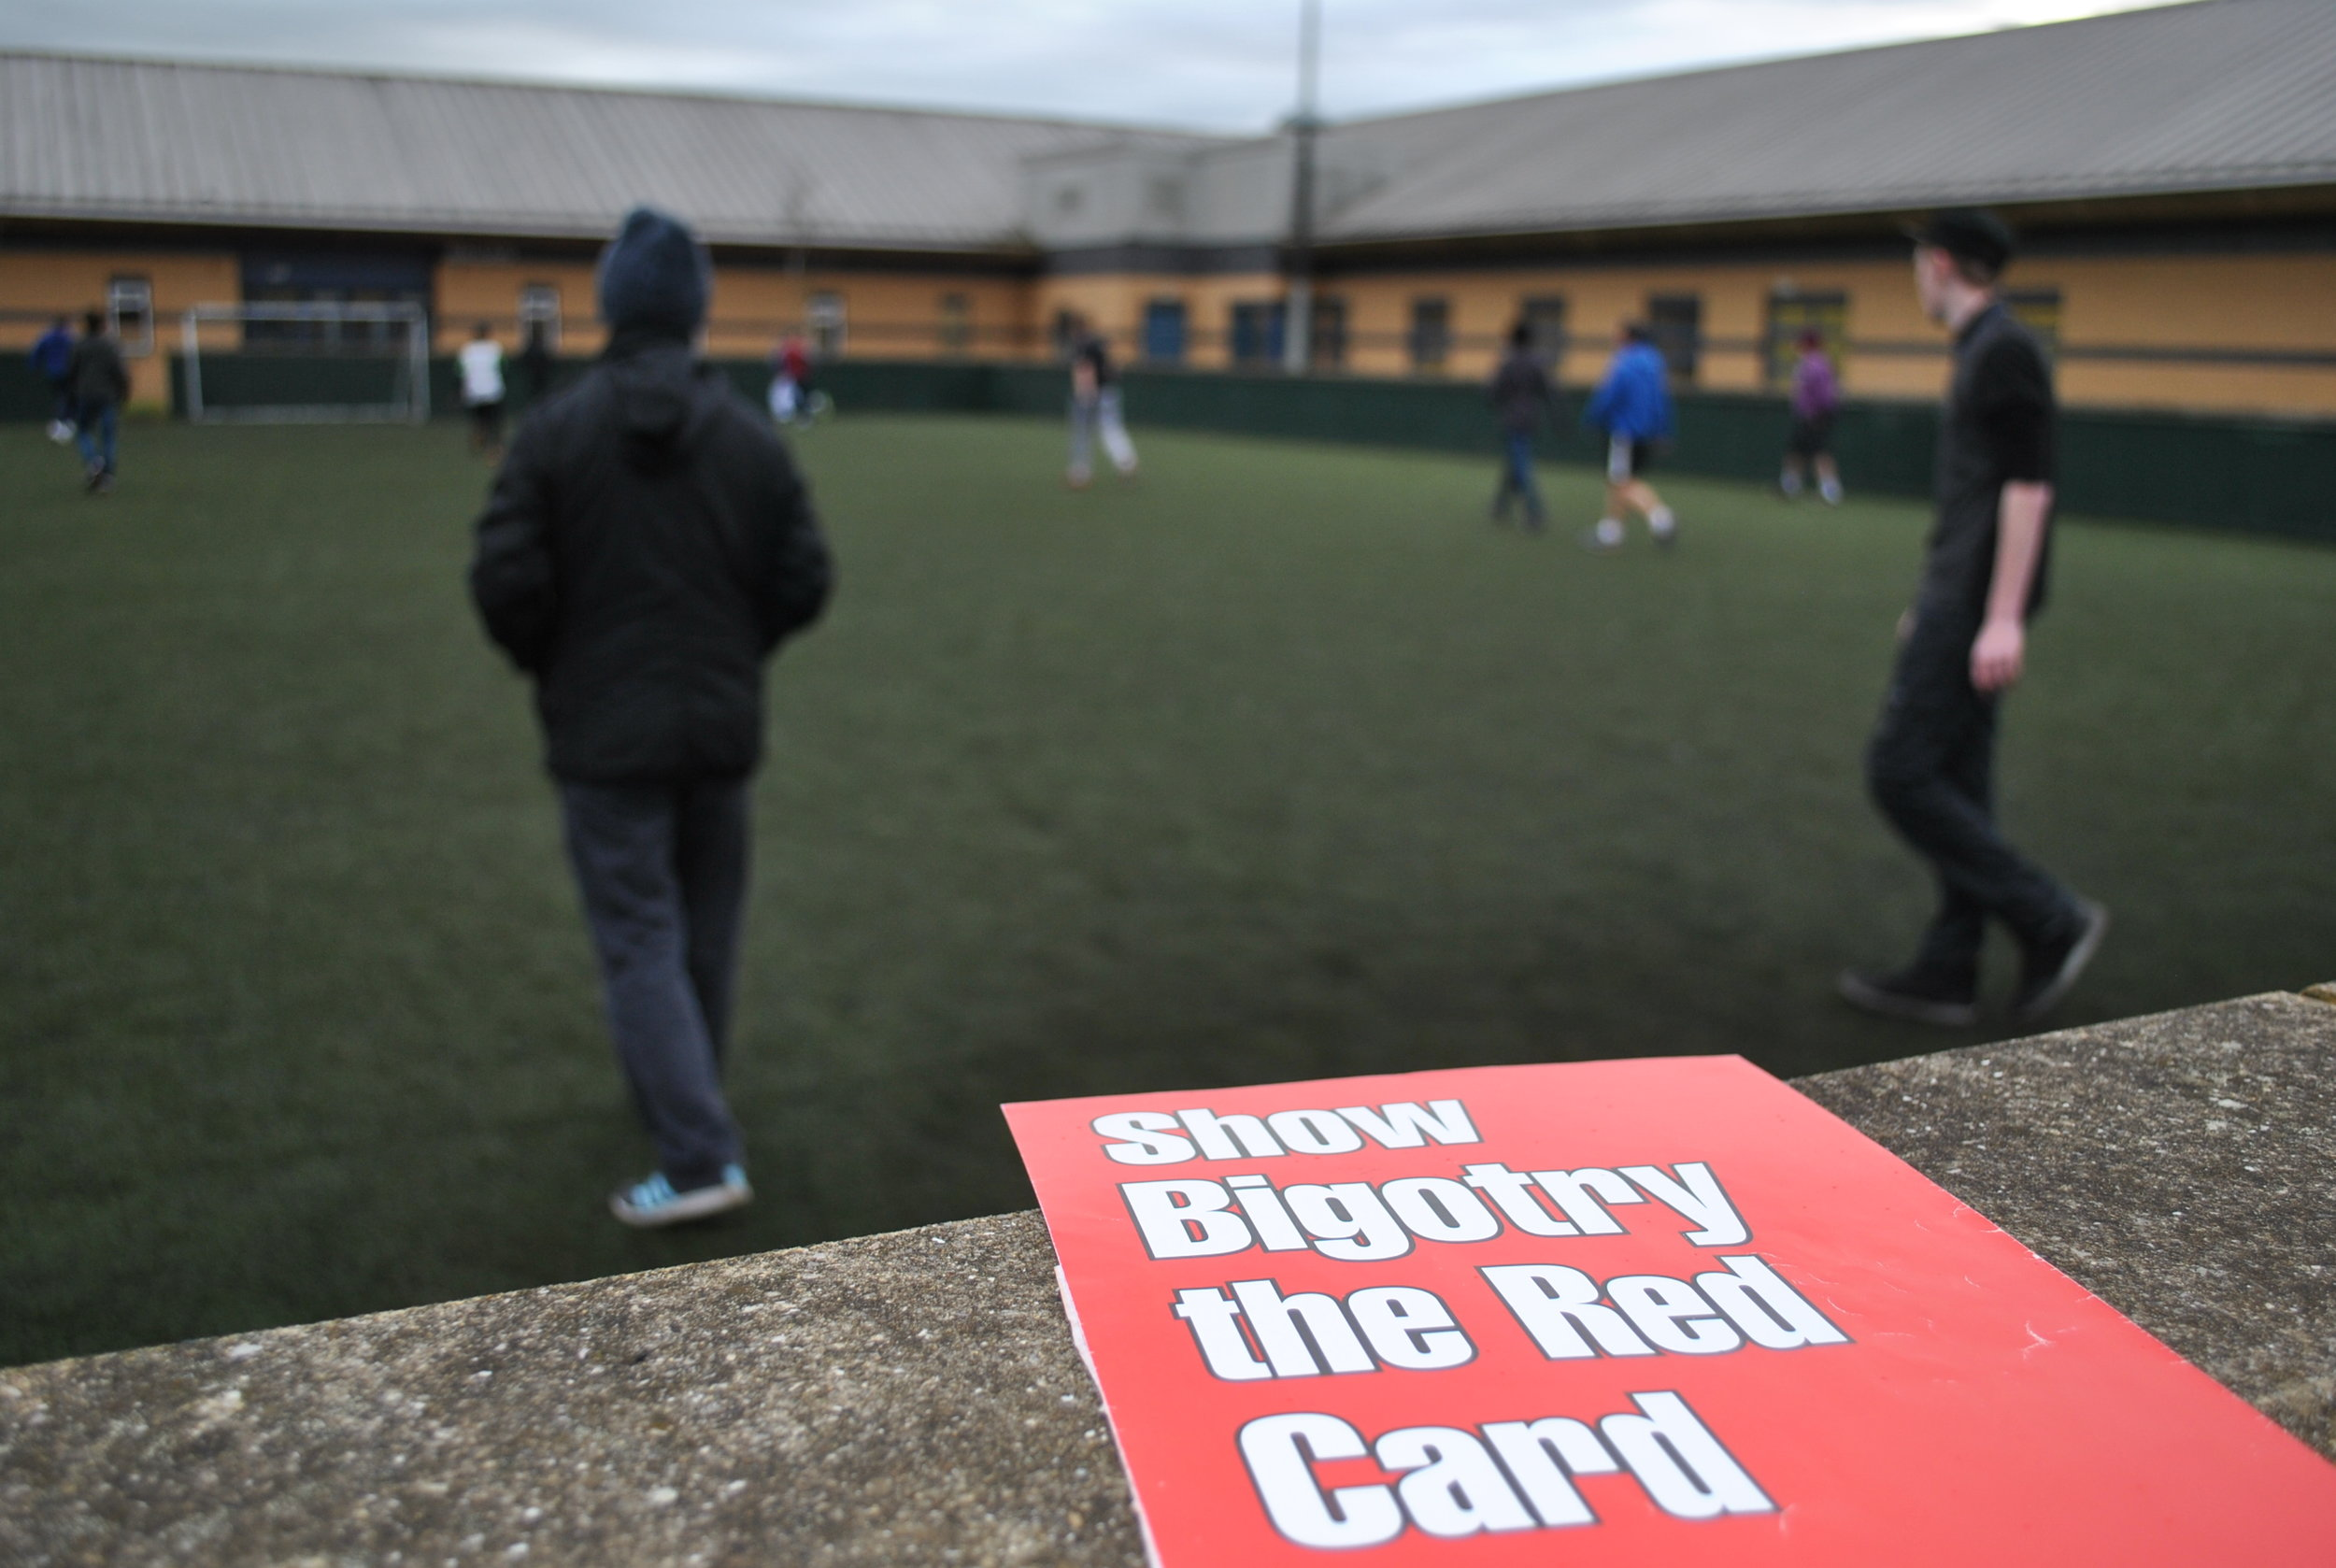 anti-sectarianism-scotland-education-prison-show-racism-the-red-card.jpg